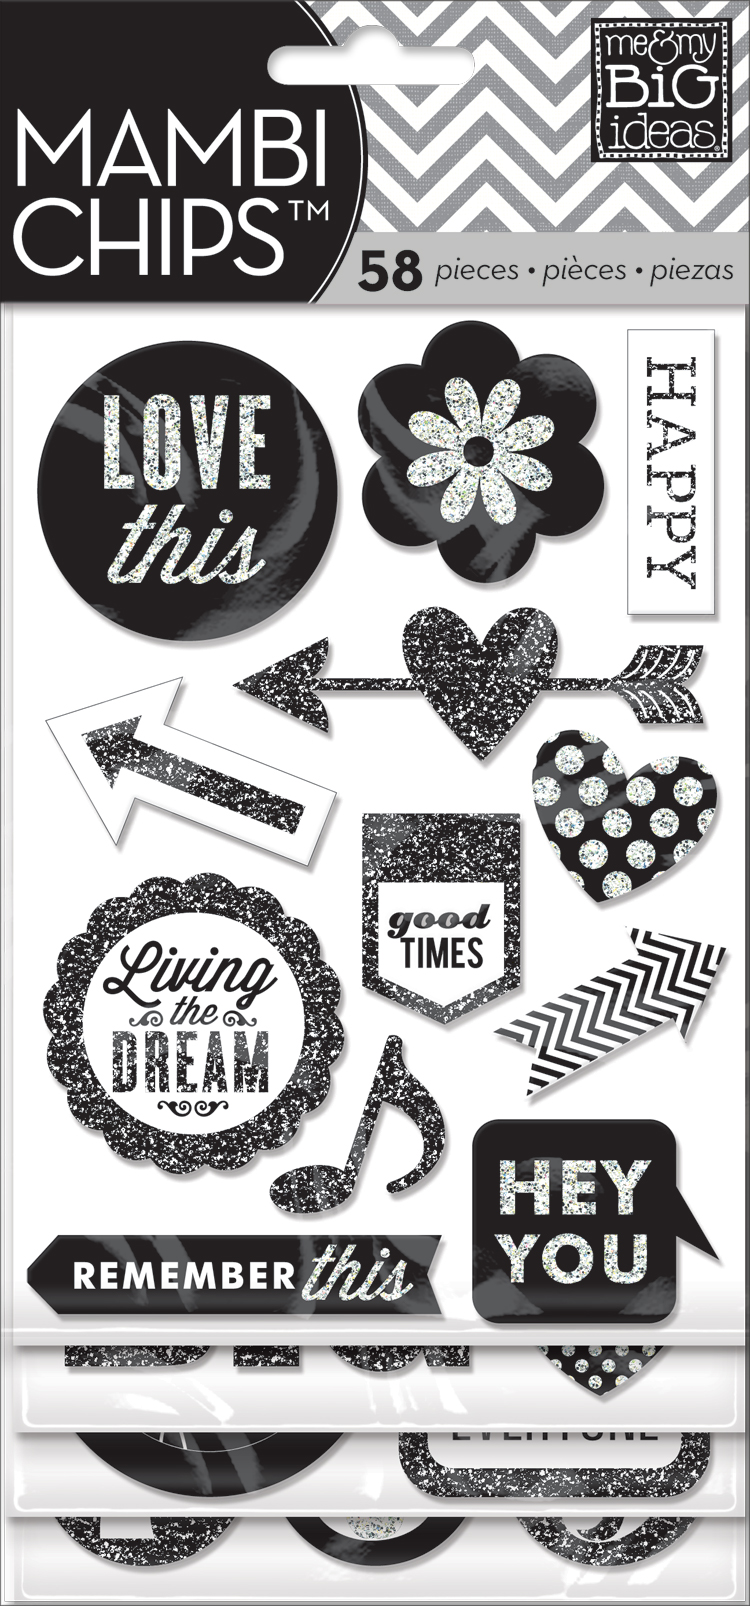 CBVX-18 Black & White glitter embellished chipboard stickers. Scrapbook mambiCHIPS.